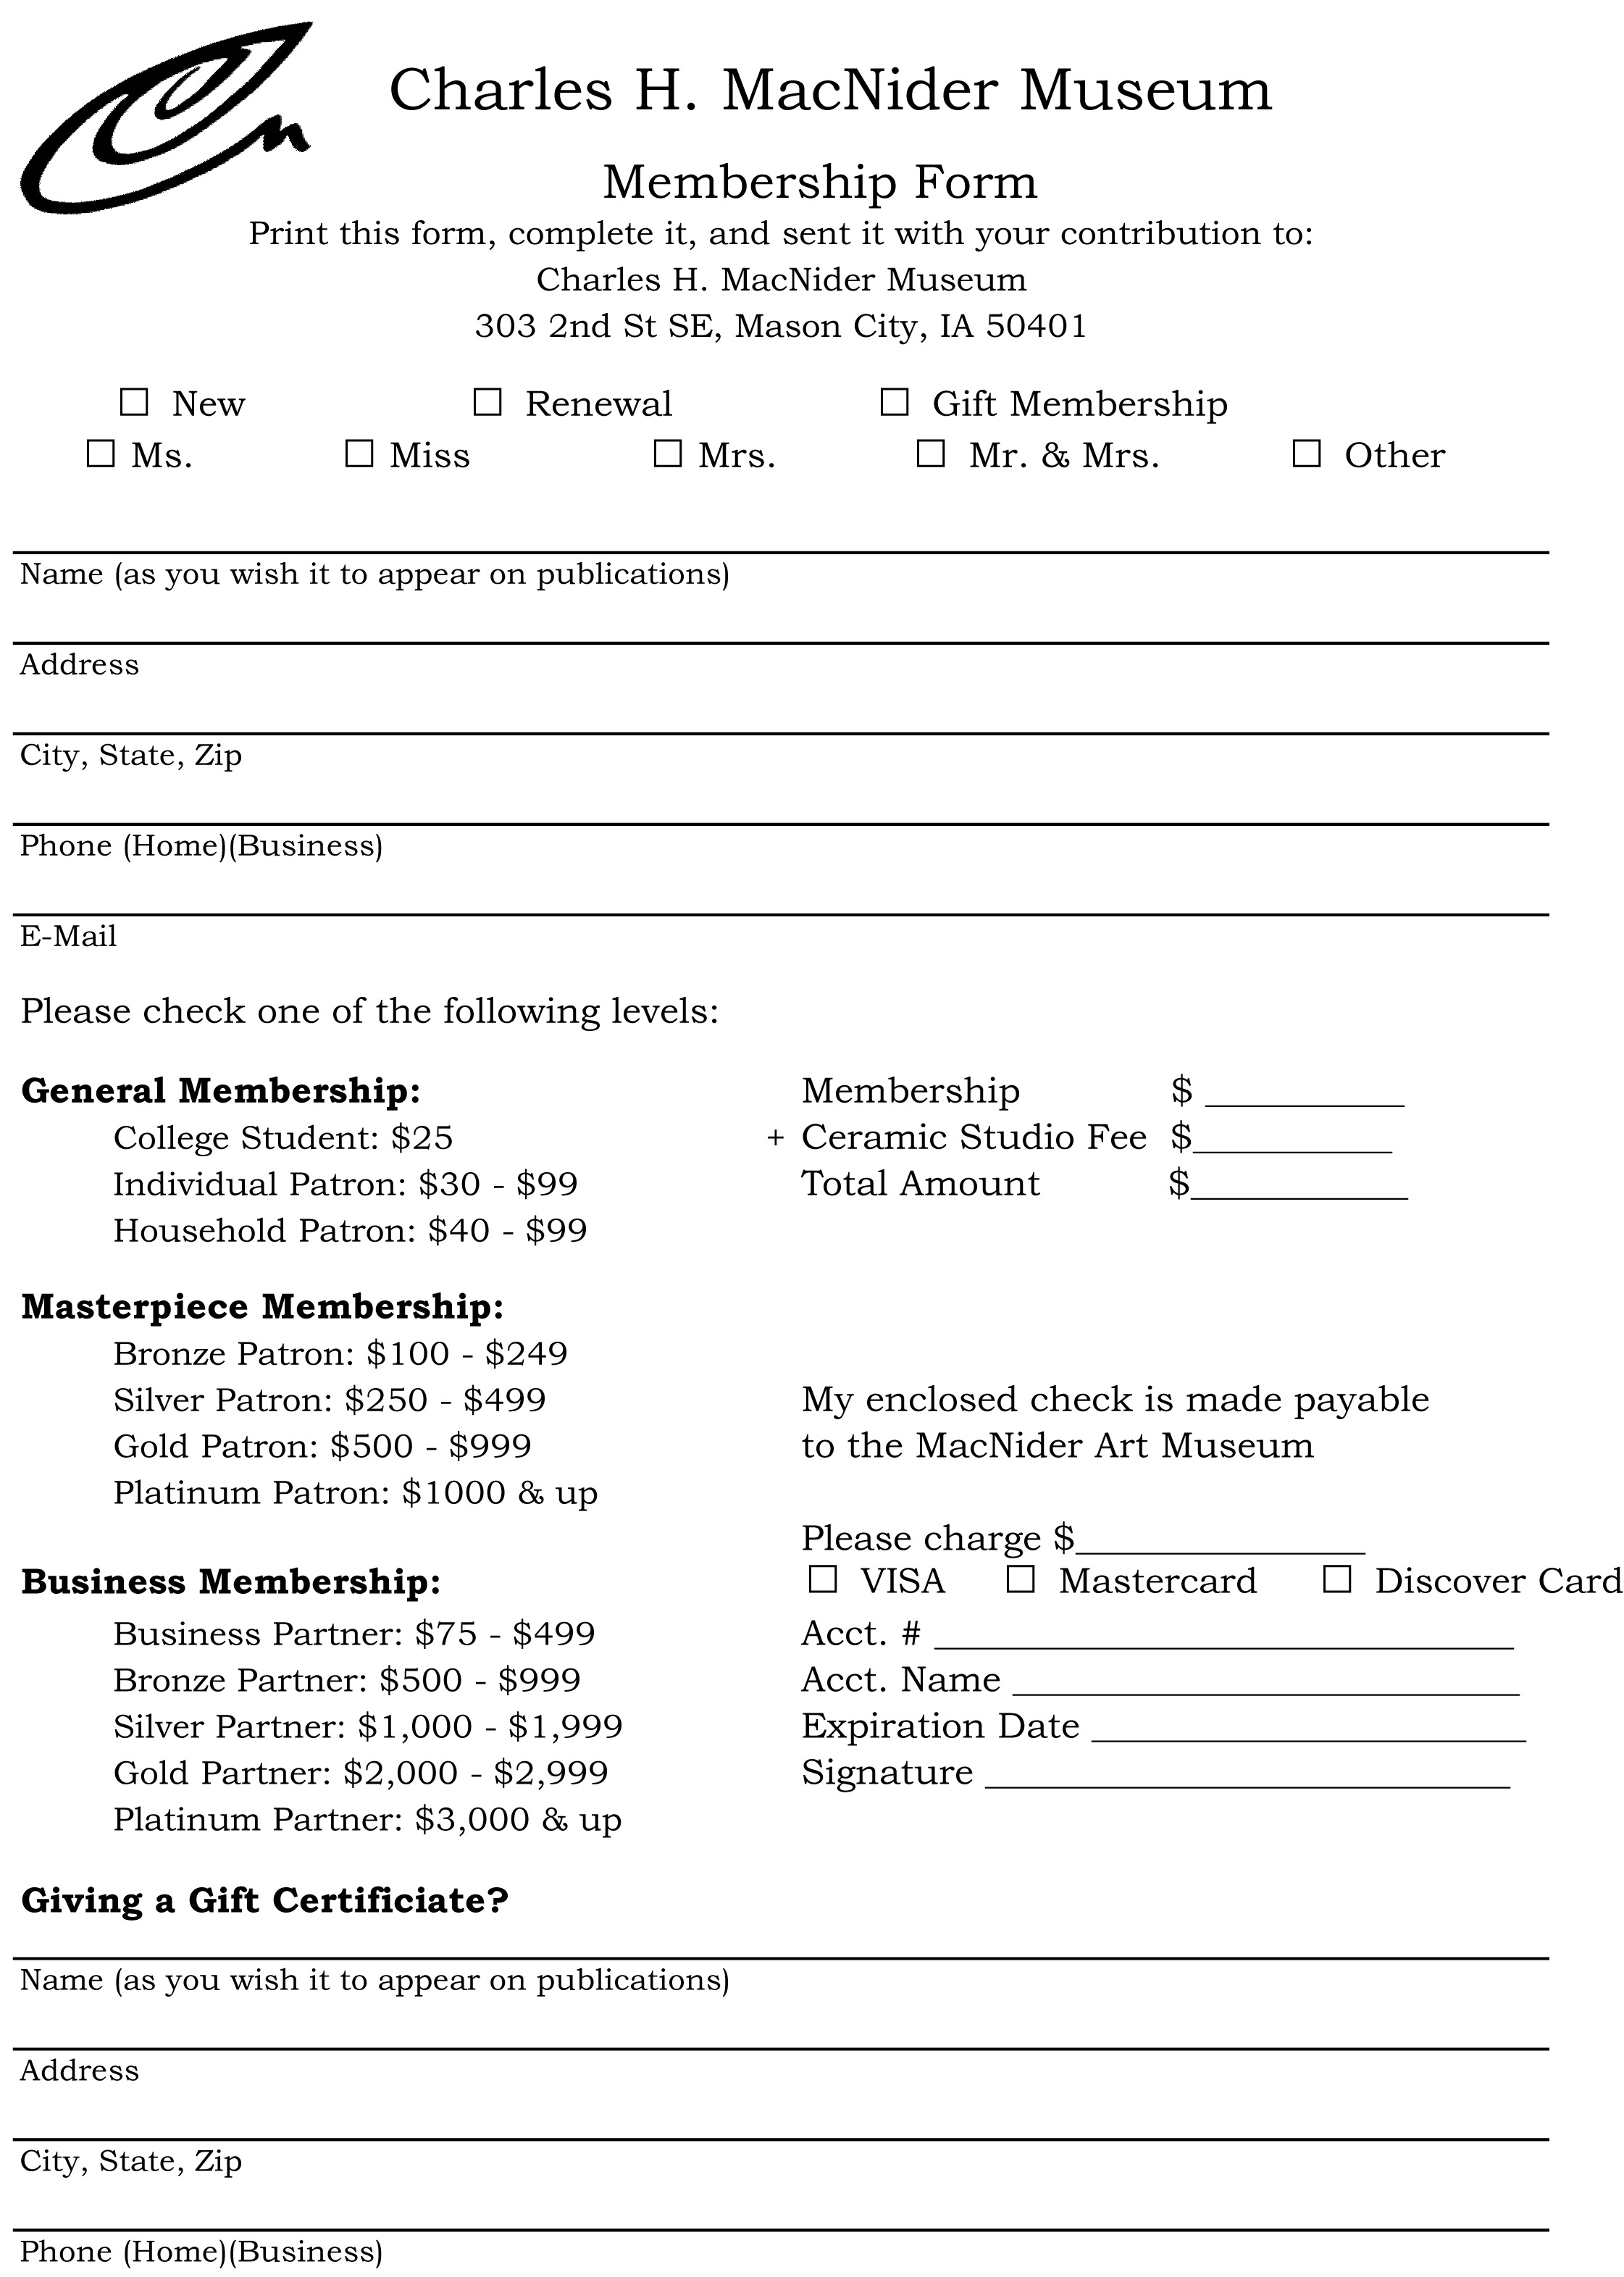 Membership Form.xls